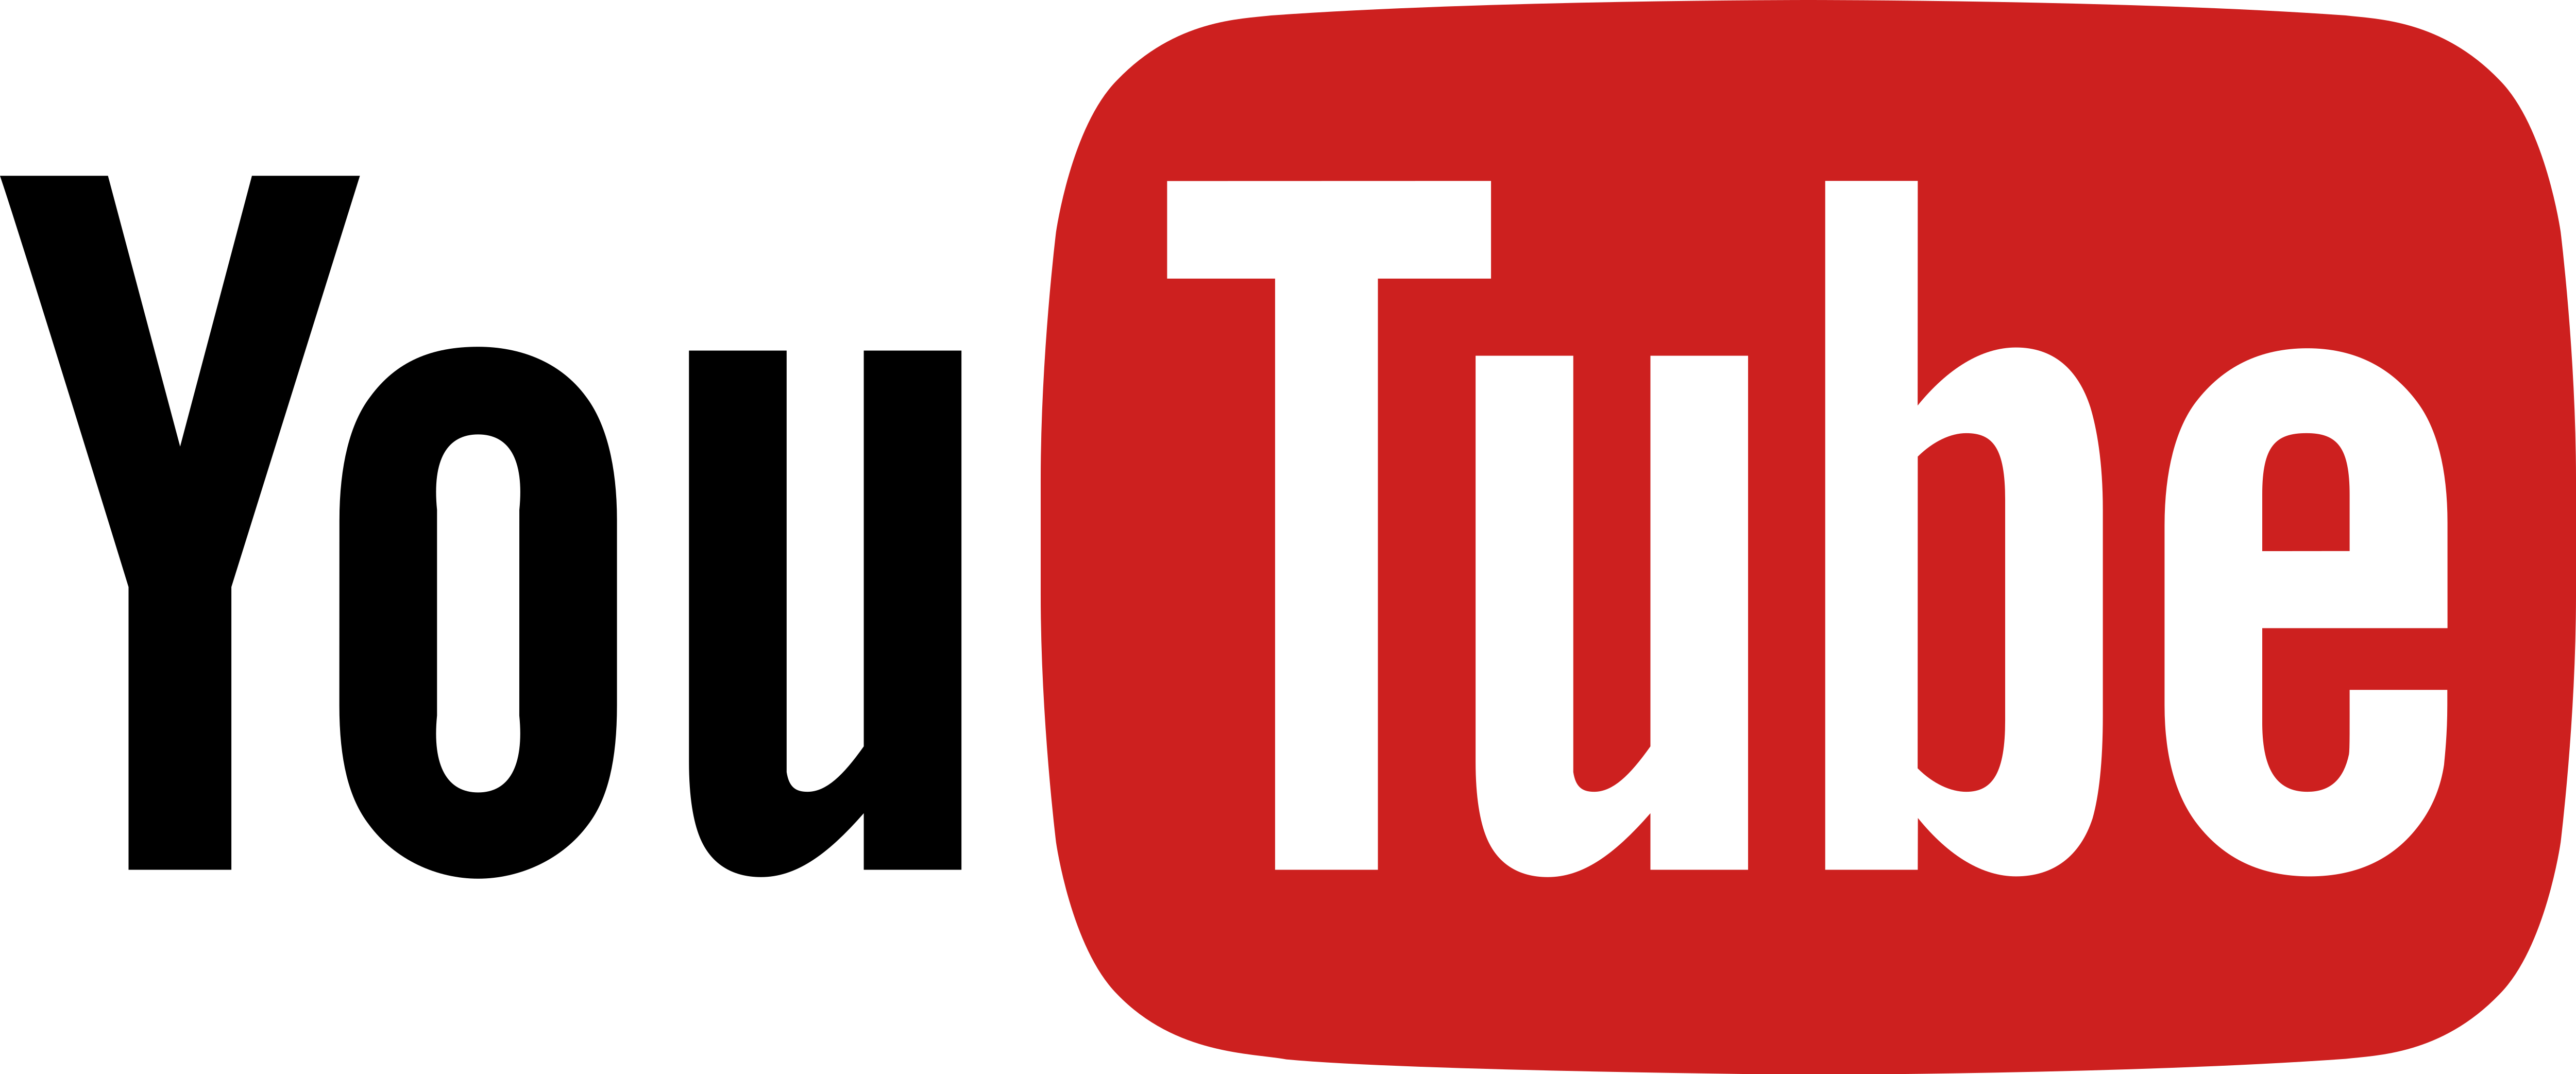 Luccas Neto Youtube PNG, imagen png luccas nieto, bild png luccas enkel, picture png luccas grandson,